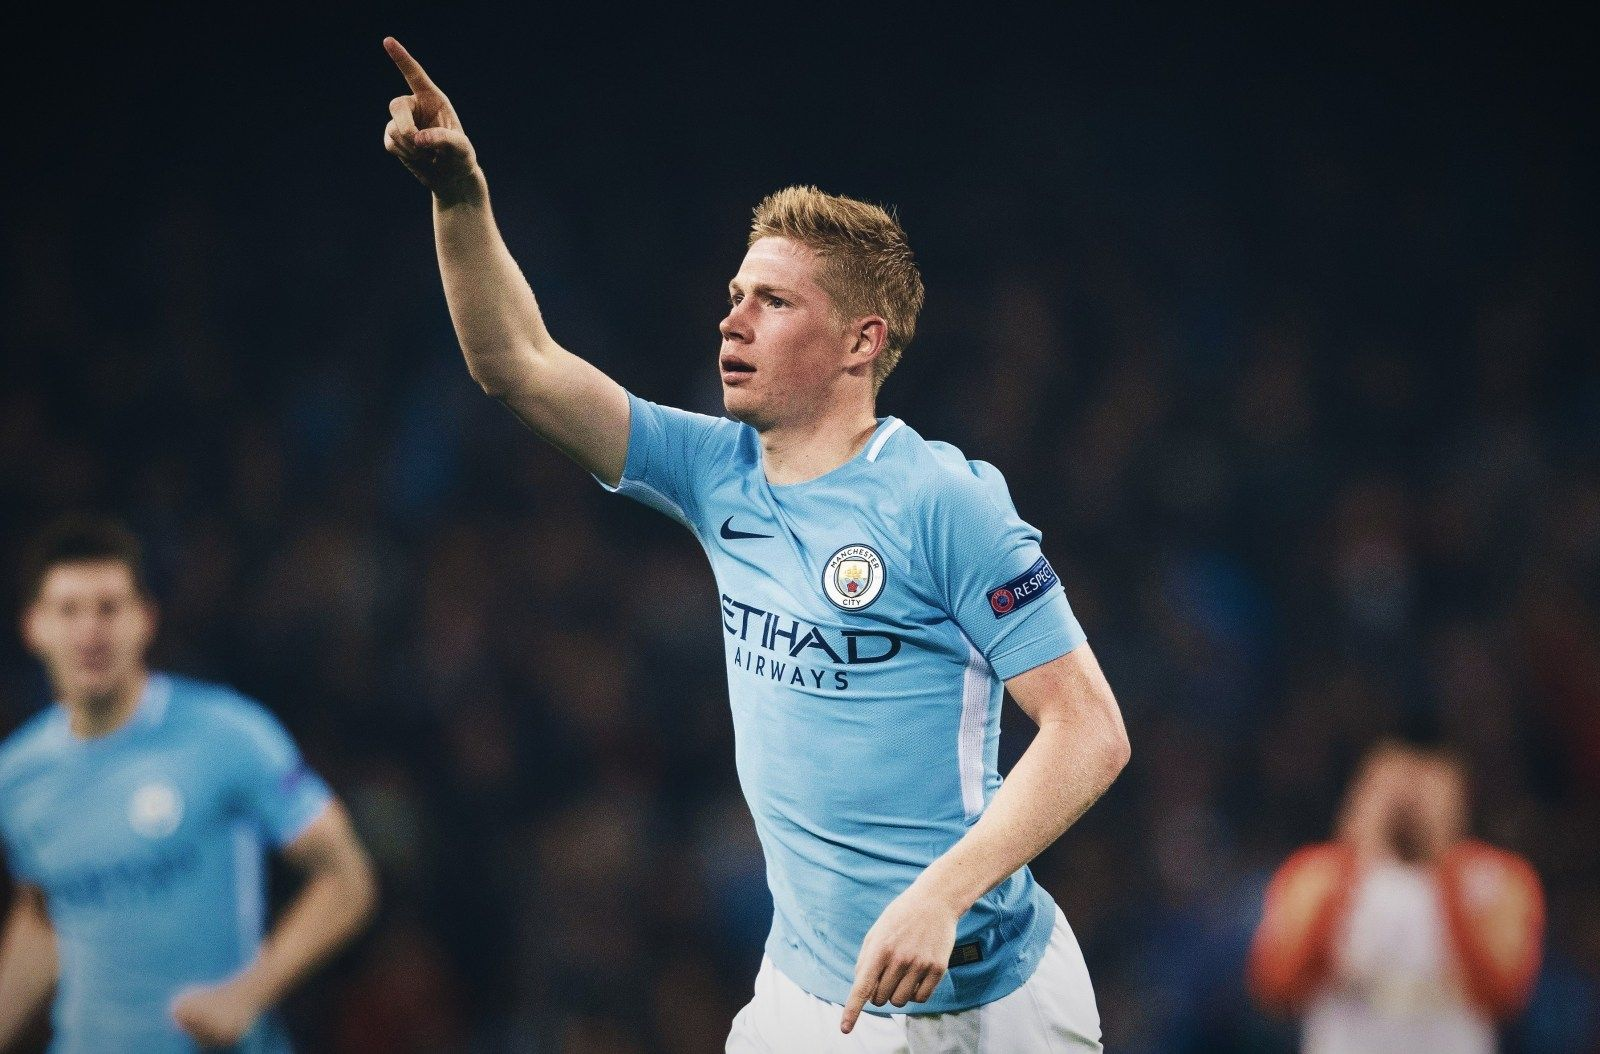 Pin by Shut Shot on Manchester city (With images